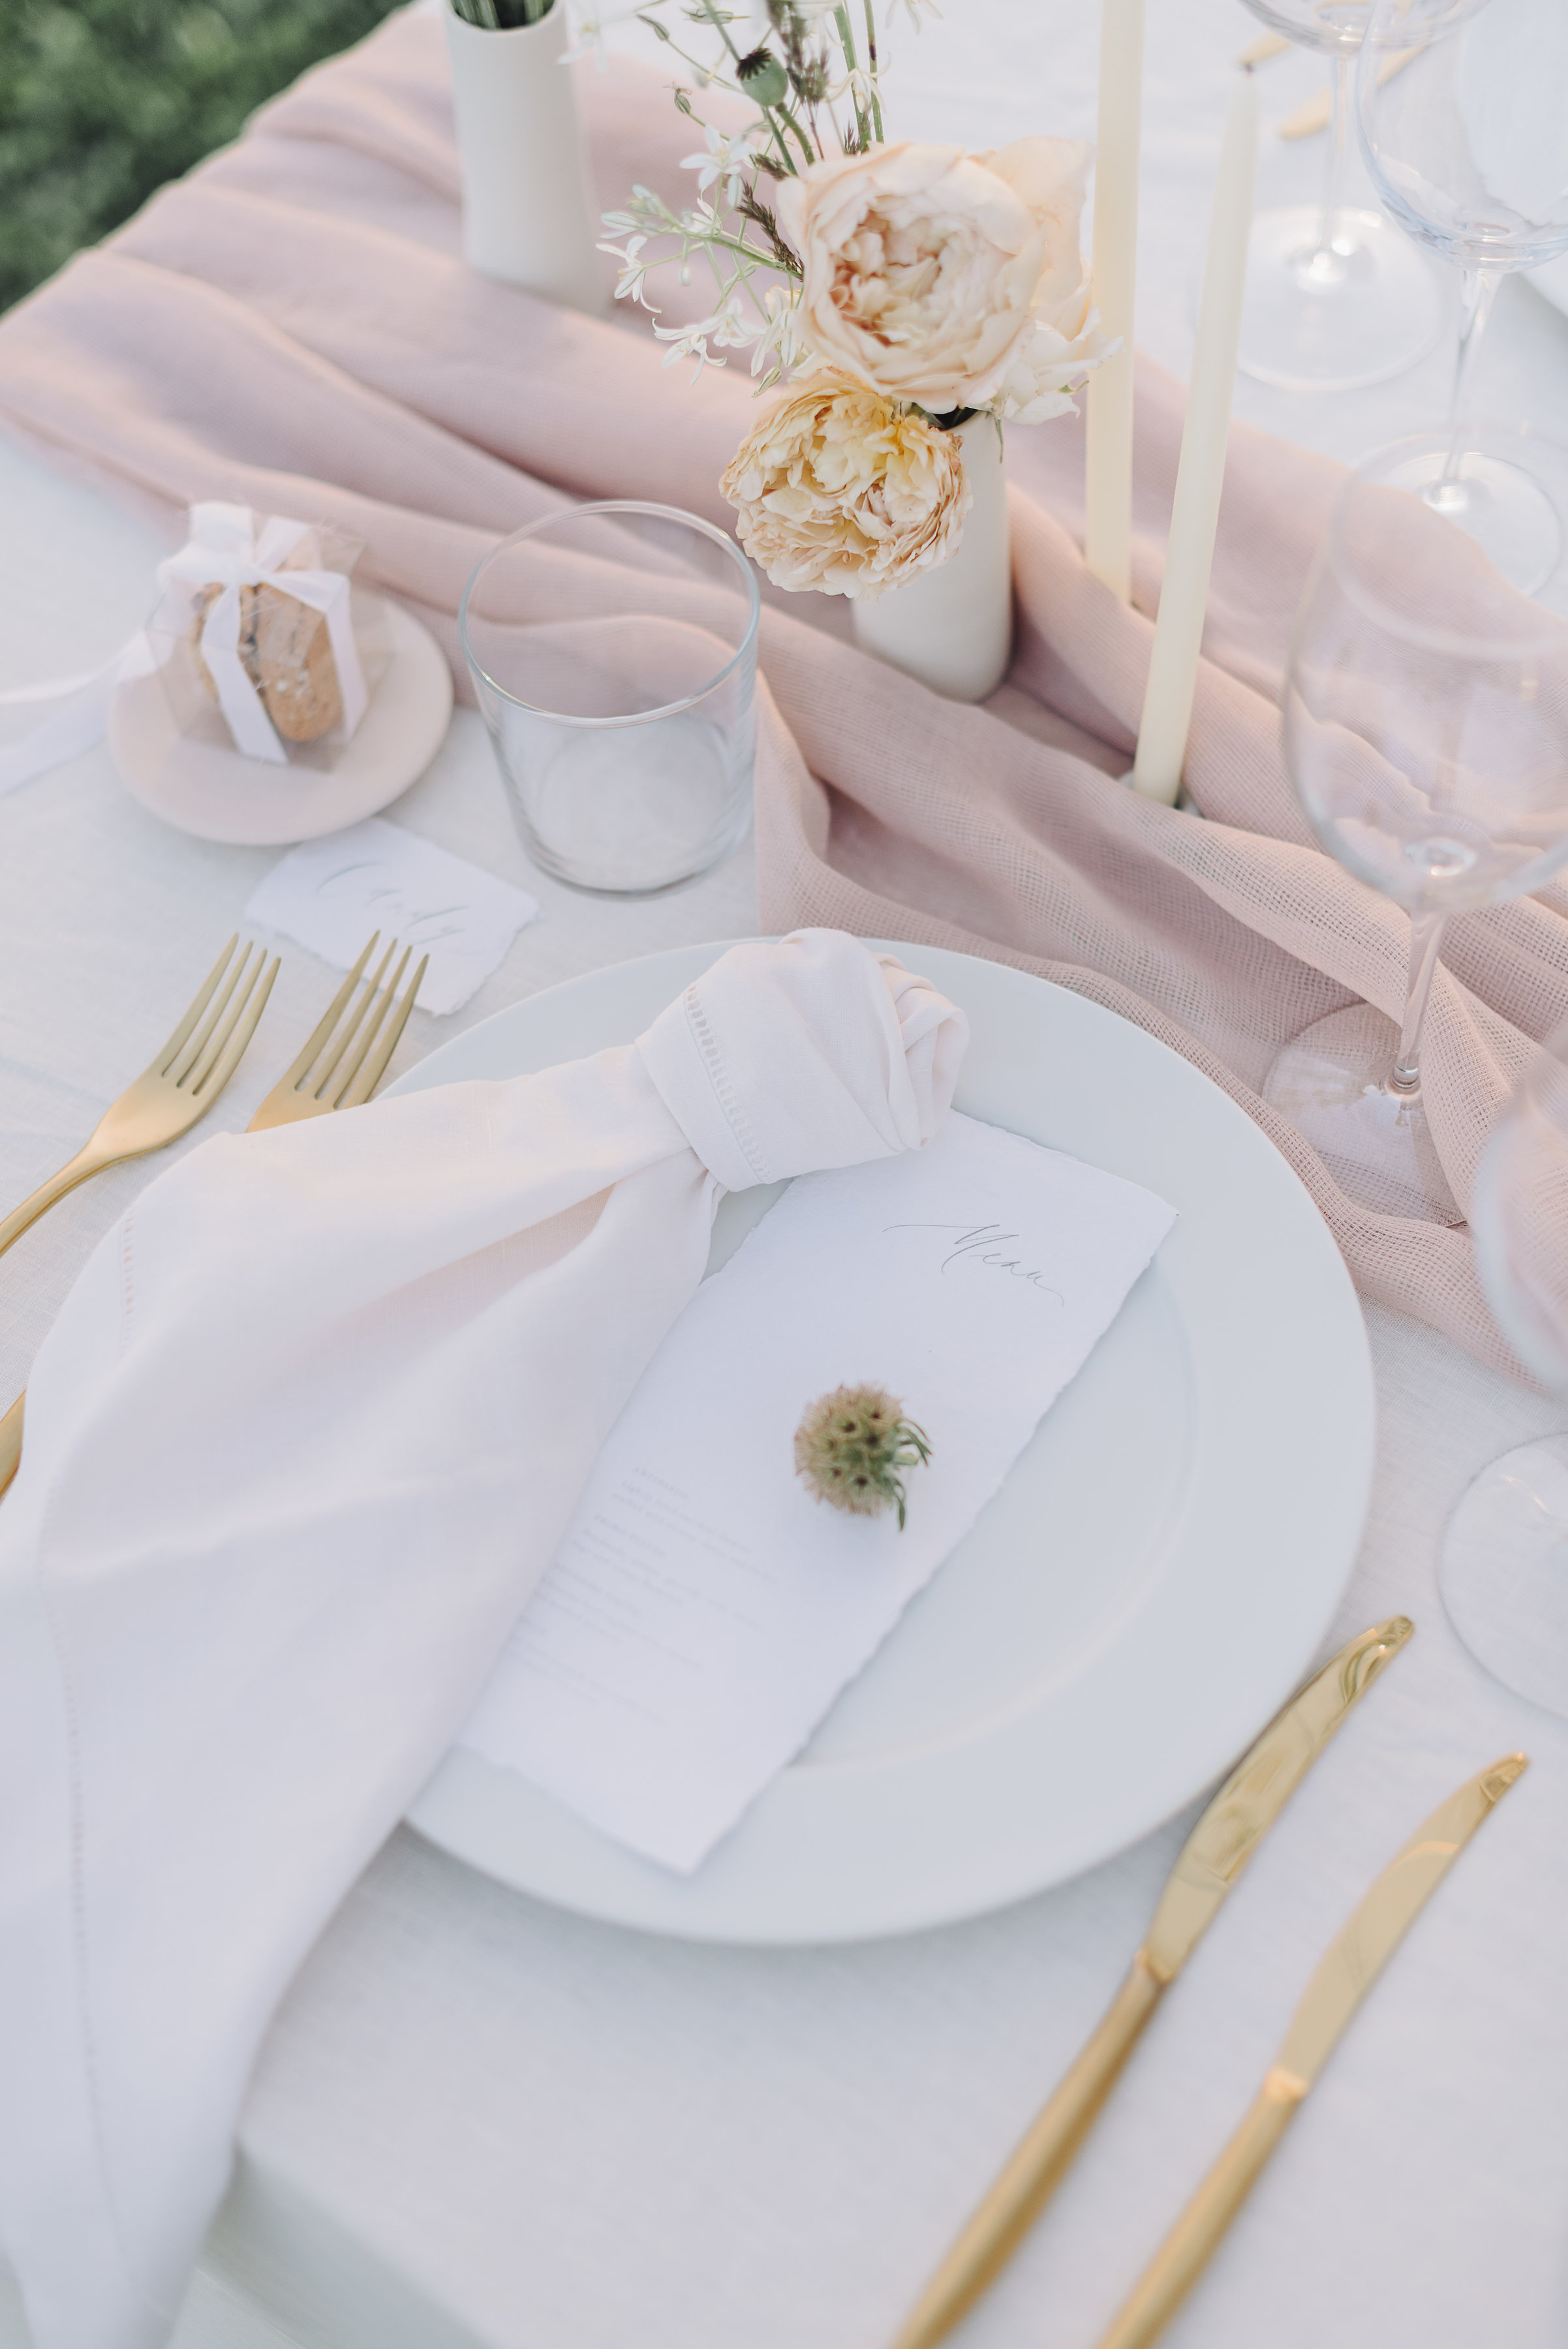 Elegant wedding table set with white, cream and blush accents